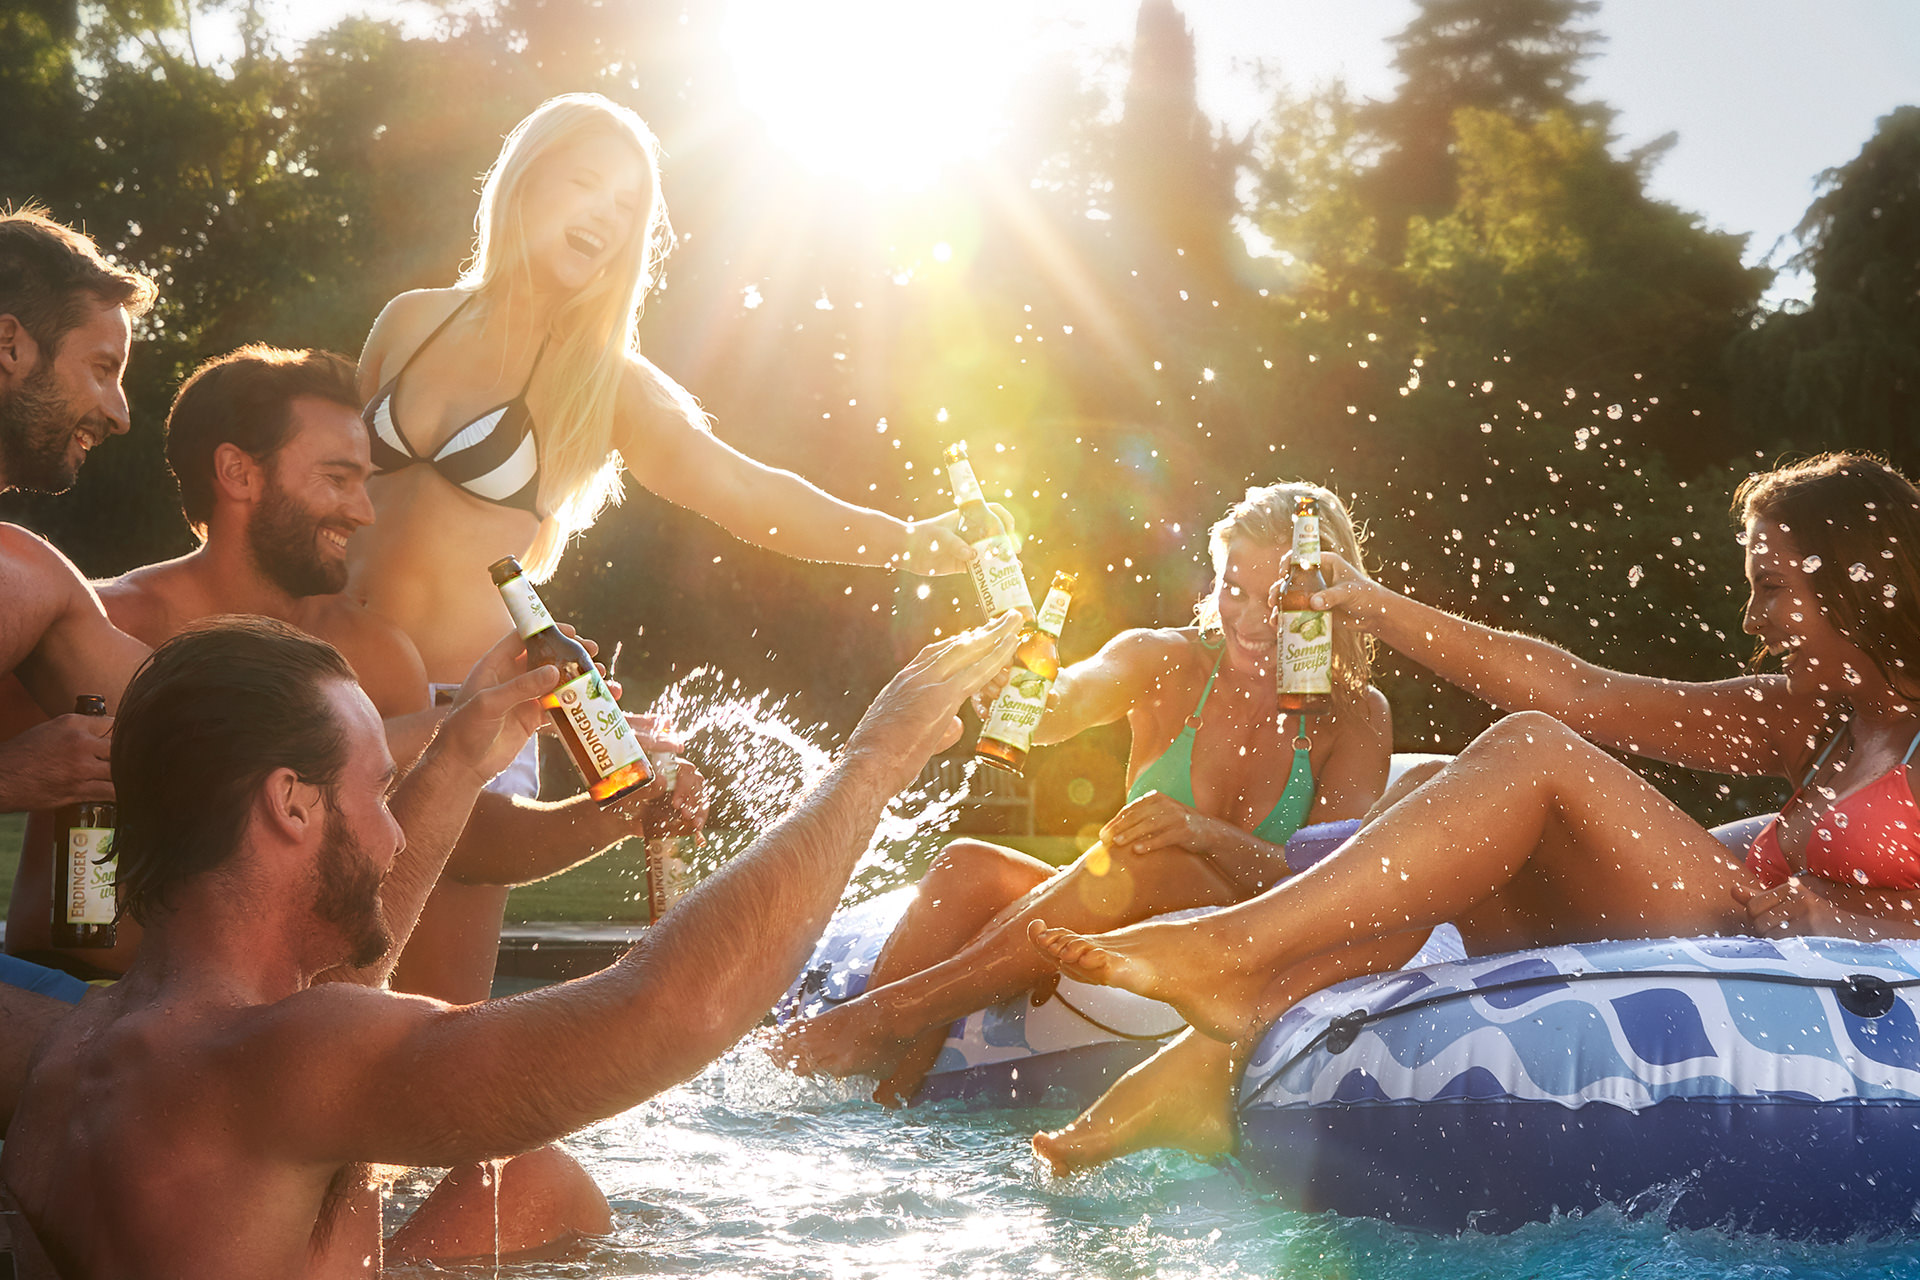 pool-party-people-erdinger-sommerweissejpg